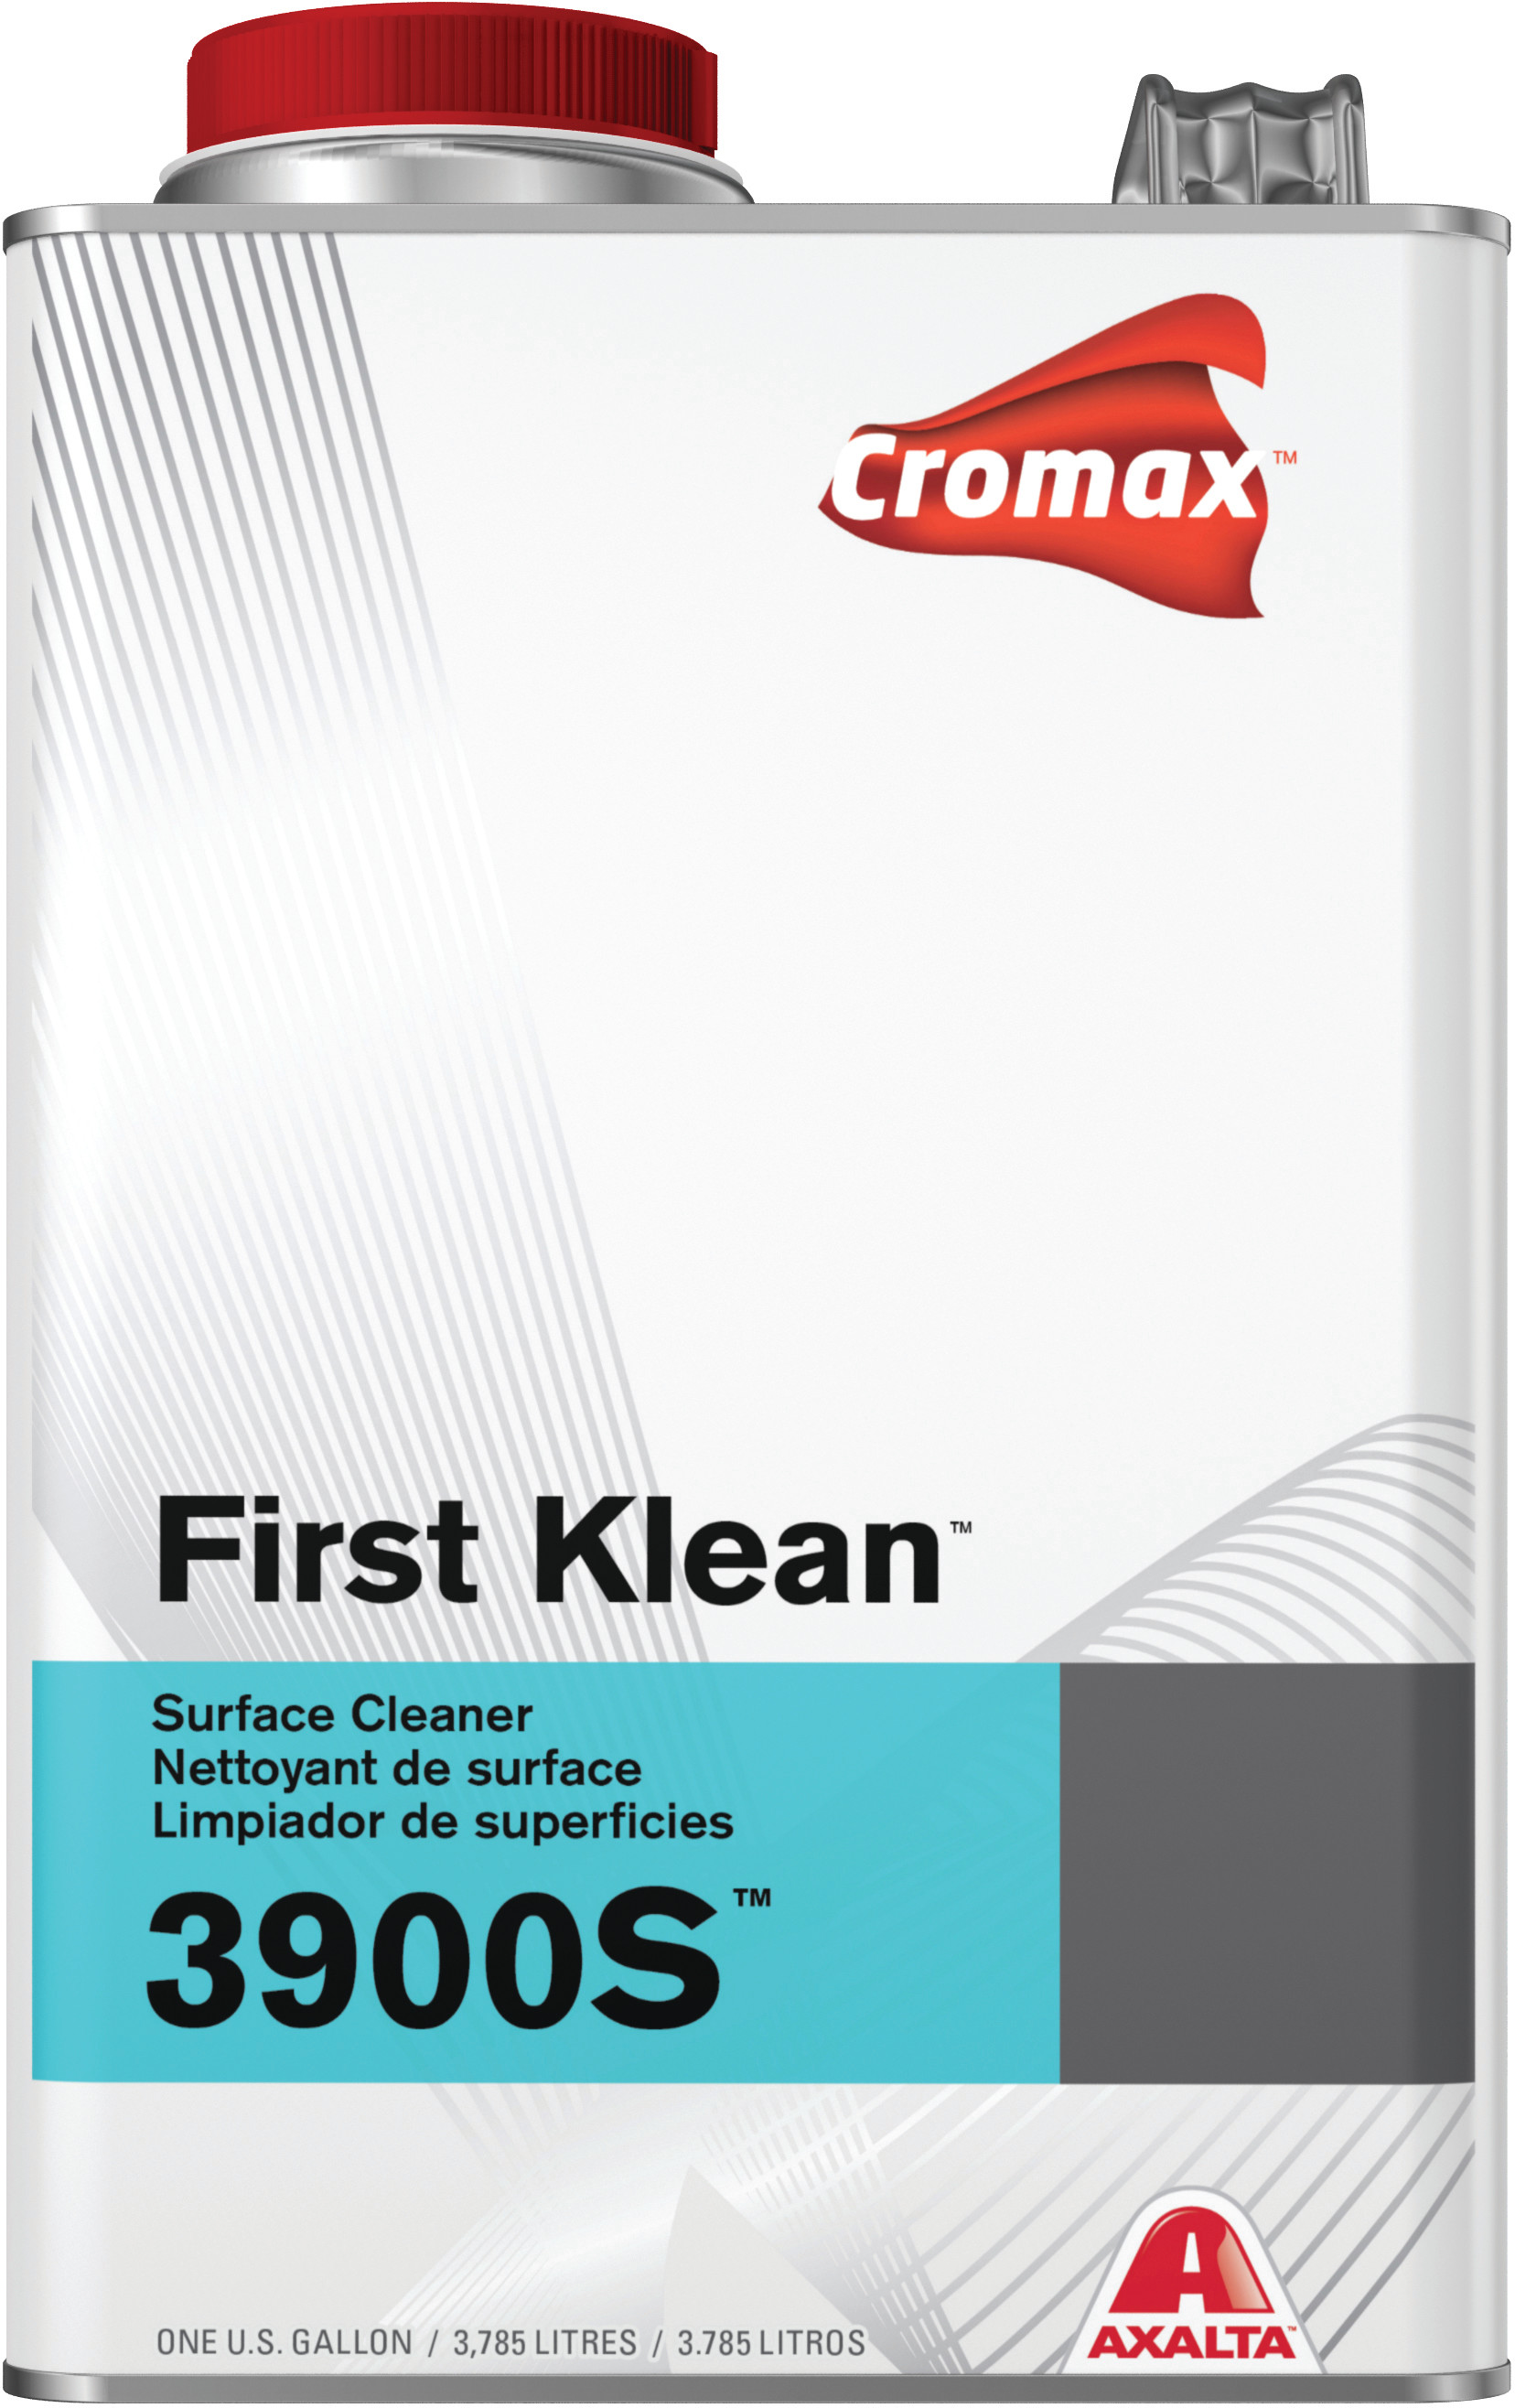 dupont first klean 3900s gallon. Black Bedroom Furniture Sets. Home Design Ideas